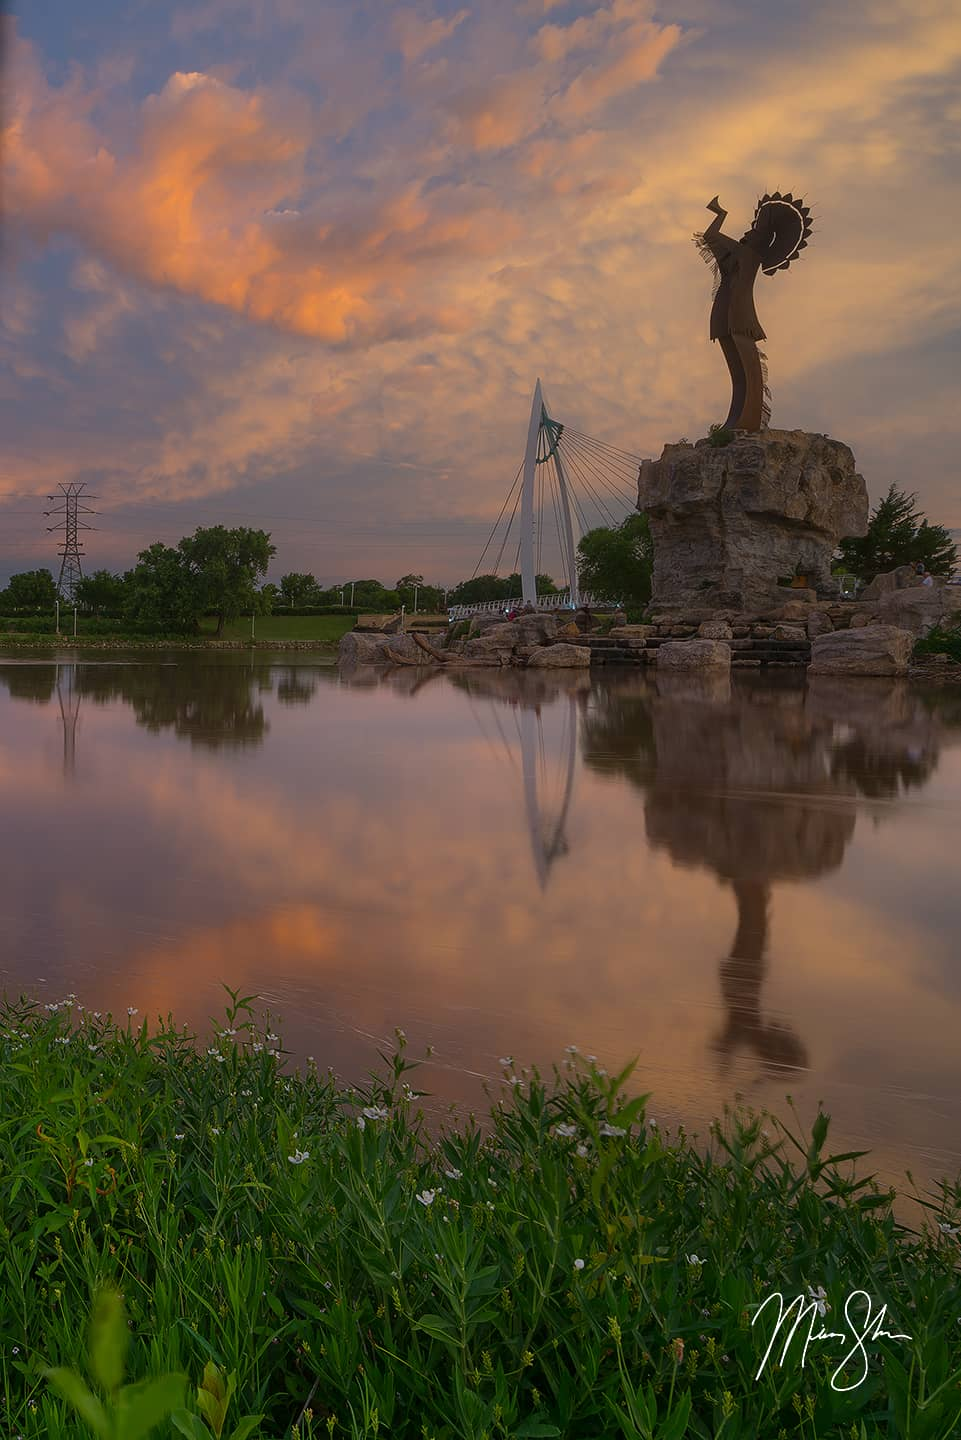 Open edition fine art print of Summer Reflection at the Keeper of the Plains from Mickey Shannon Photography. Location: The Keeper of the Plains, Wichita, Kansas